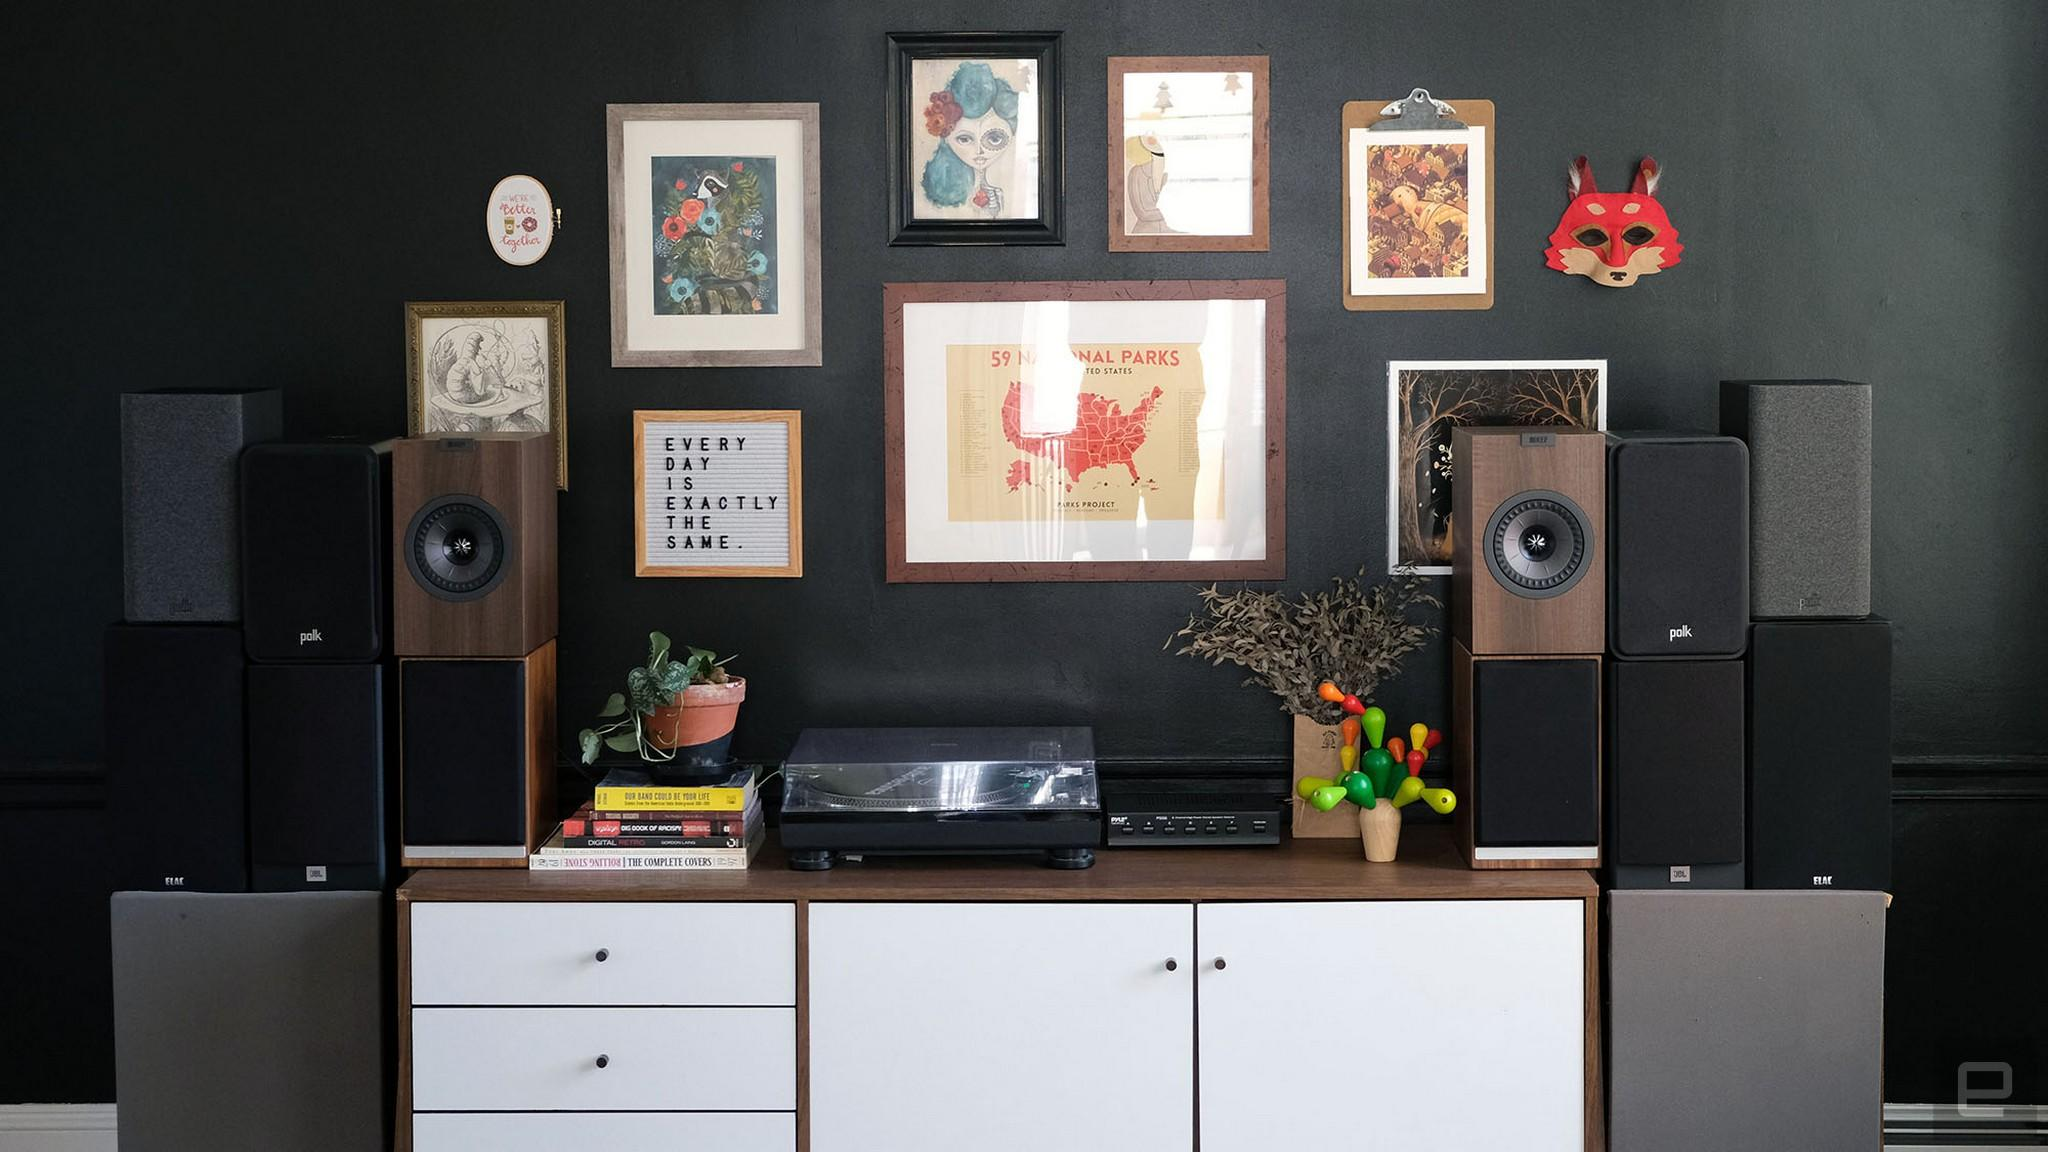 The best passive bookshelf speakers for most people   Engadget